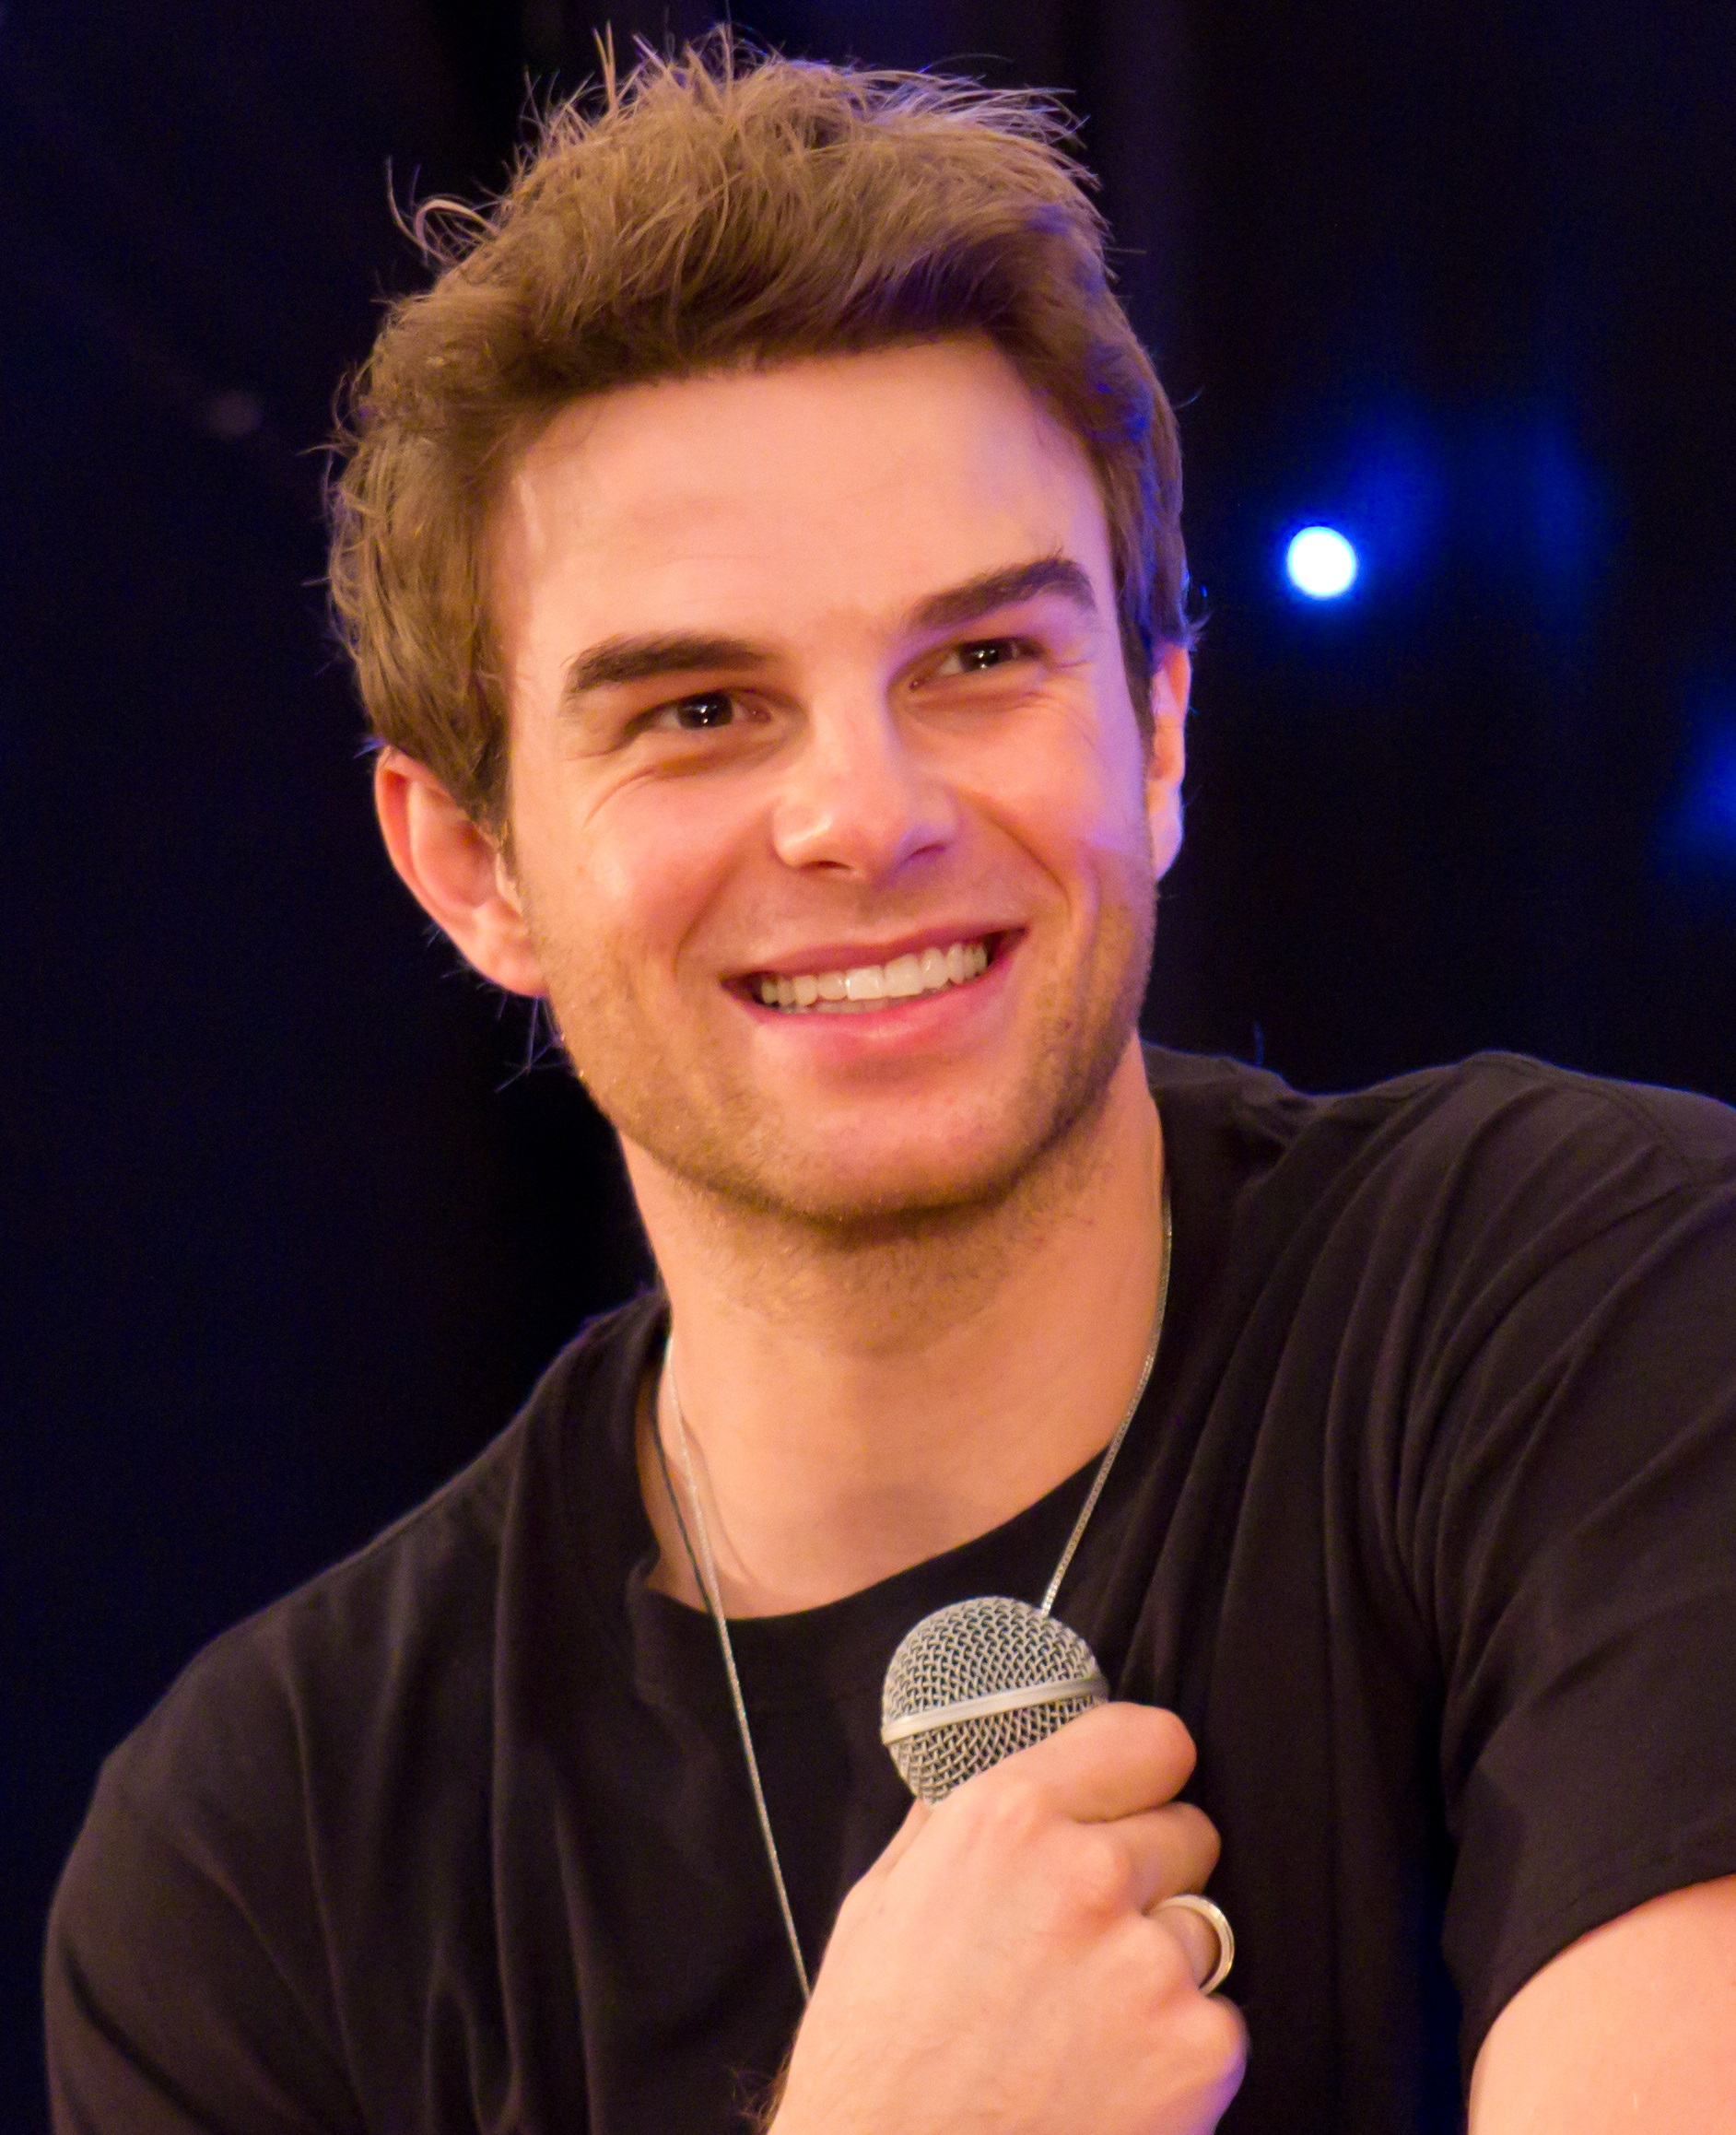 The 35-year old son of father (?) and mother(?) Nathaniel Buzolic in 2018 photo. Nathaniel Buzolic earned a  million dollar salary - leaving the net worth at 1 million in 2018